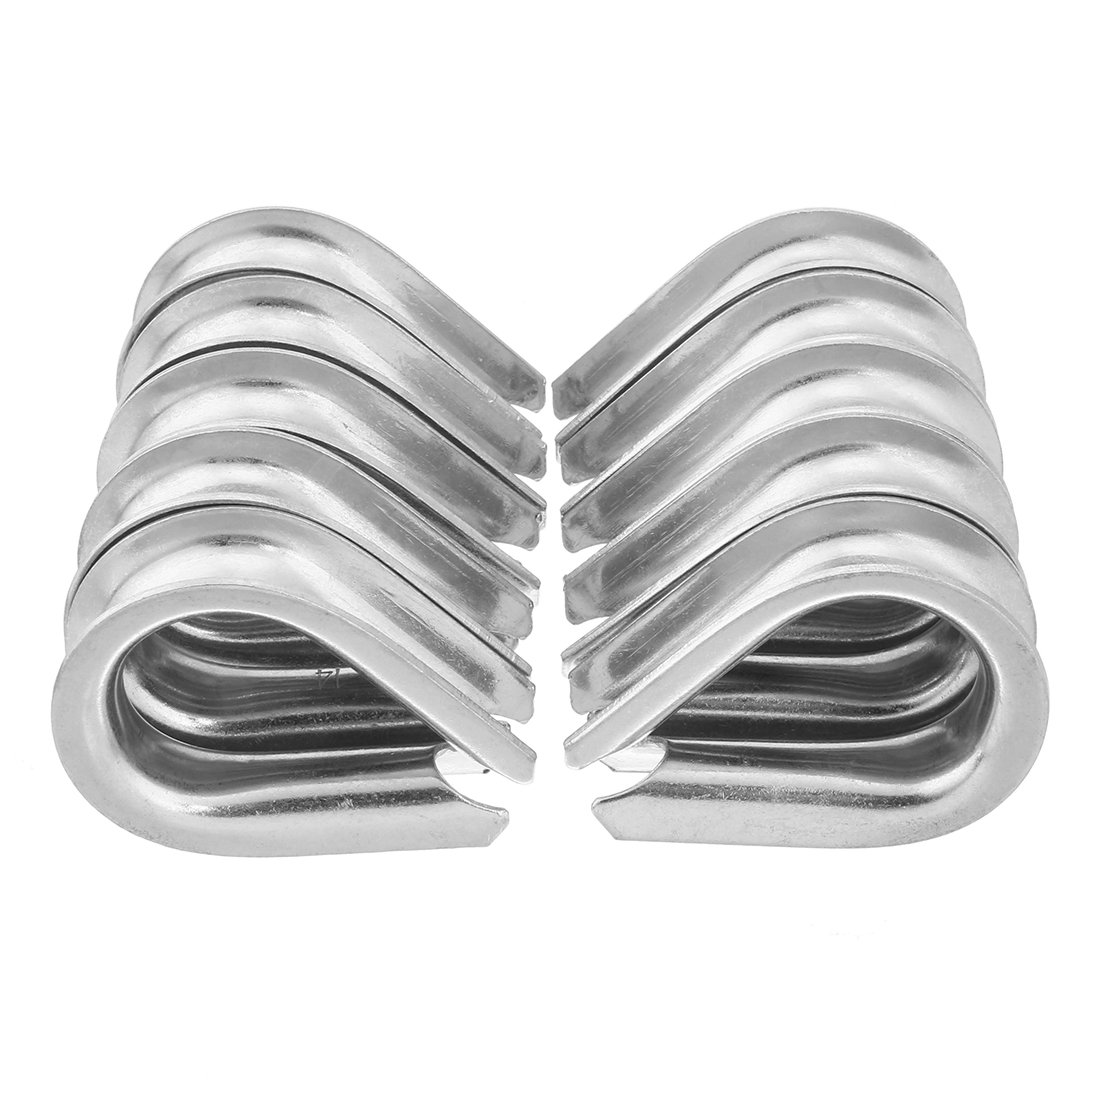 sourcingmap 304 Stainless Steel Thimble Rigging for 5//8 inch 16mm Diameter Wire Rope 10pcs